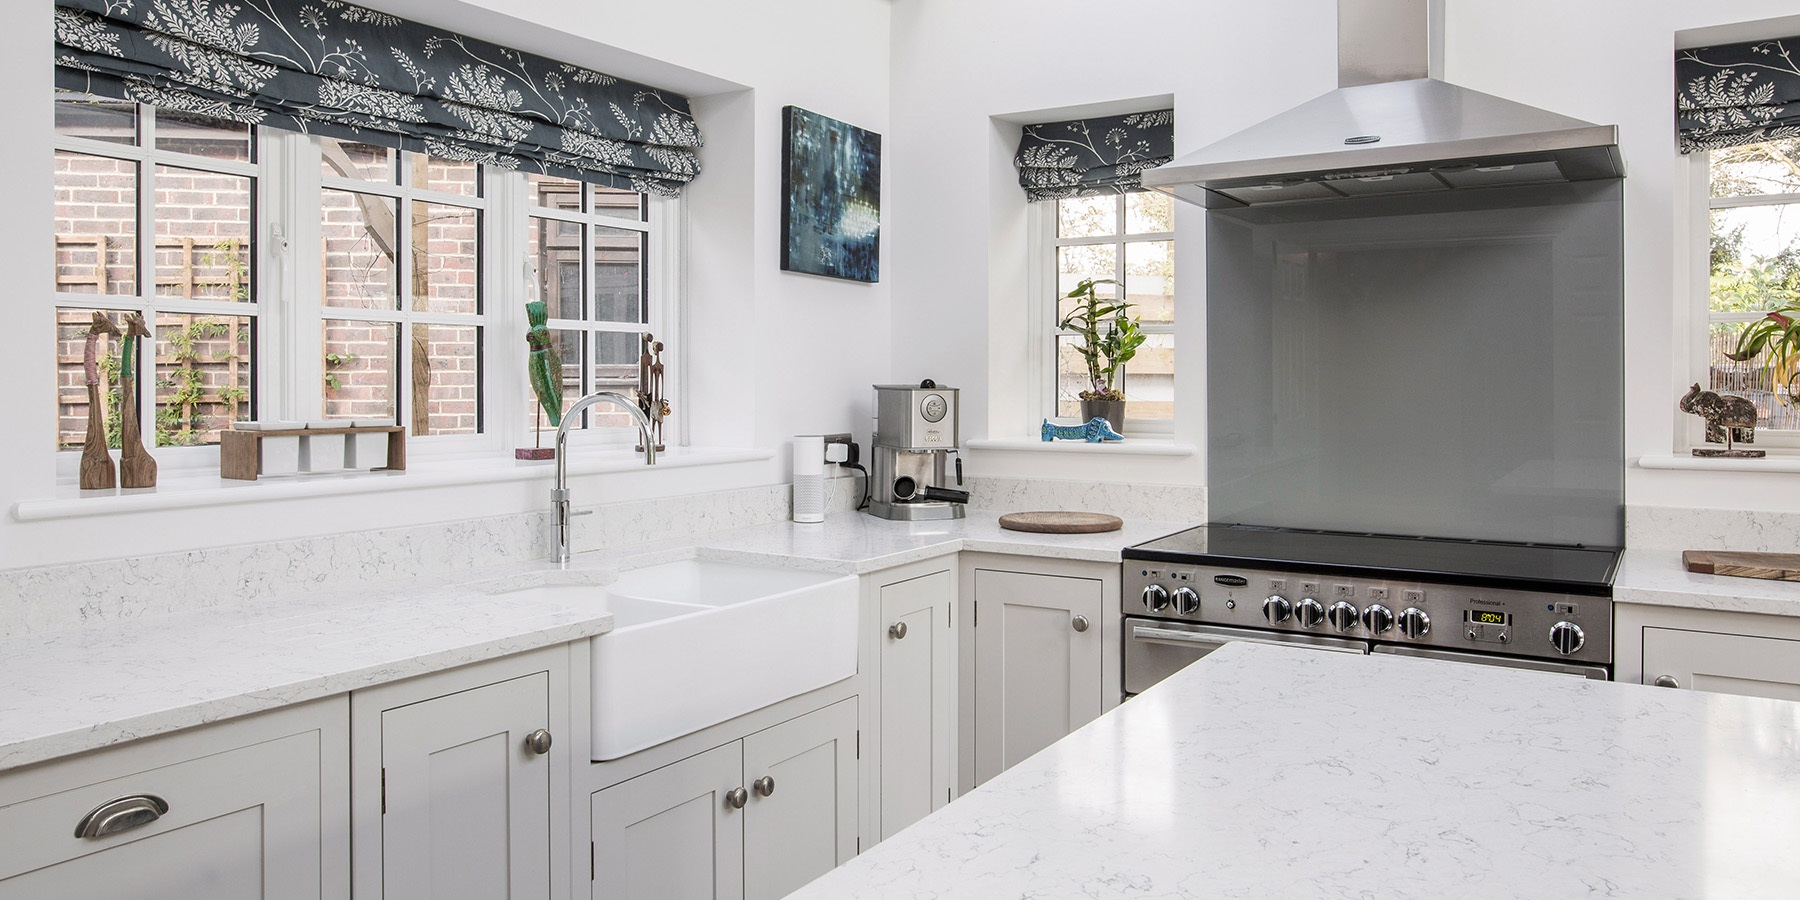 Handmade Shaker Kitchen - Burlanes classic Hoyden kitchen in white with white worktops, belfast sink and Quooker boiling water tap.